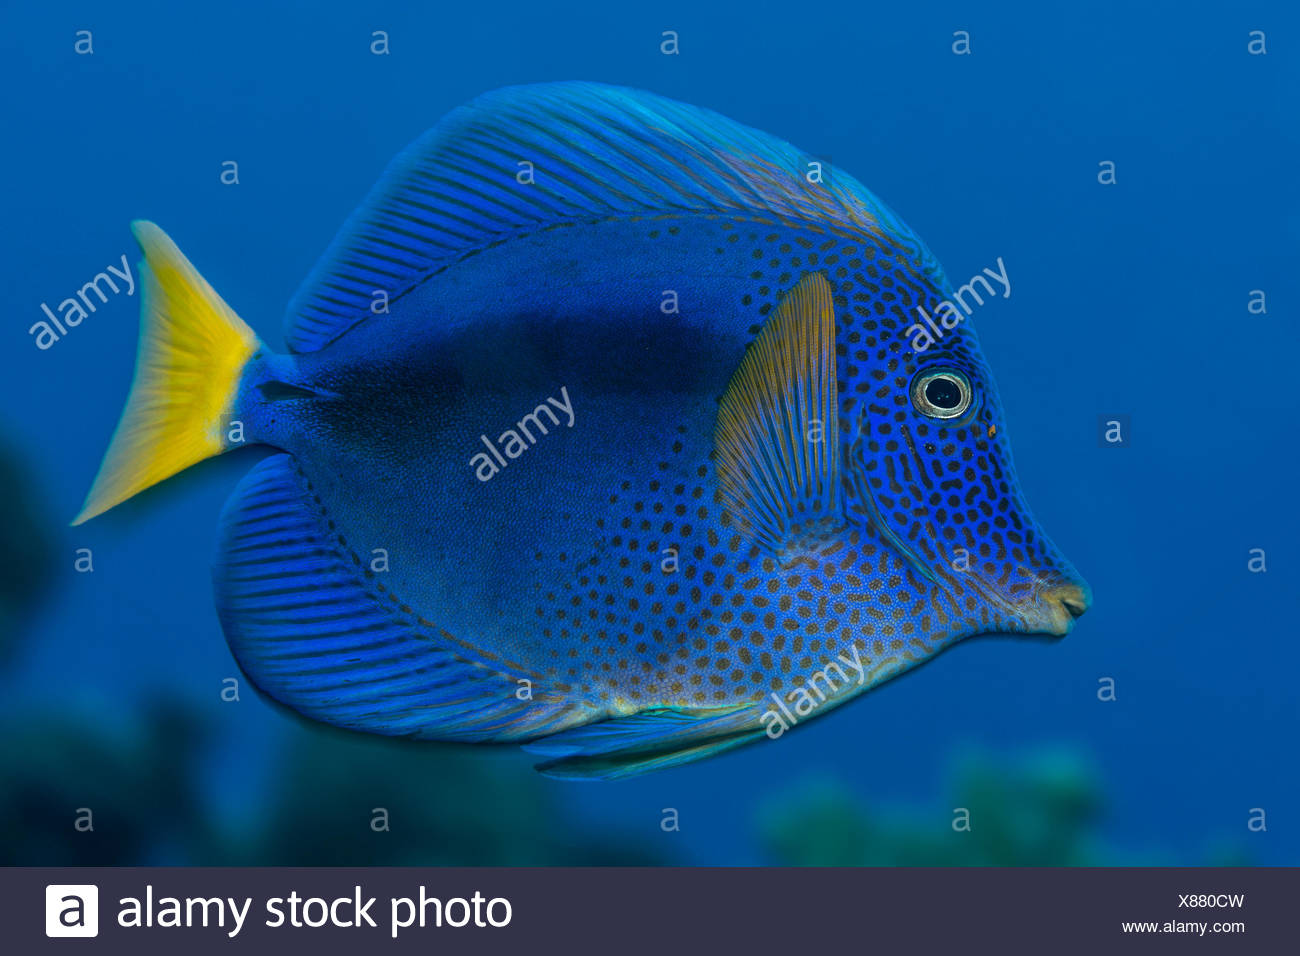 Yellowtail Tang, Zebrasoma xanthurum, Elphinstone Reef, Red Sea, Egypt - Stock Image